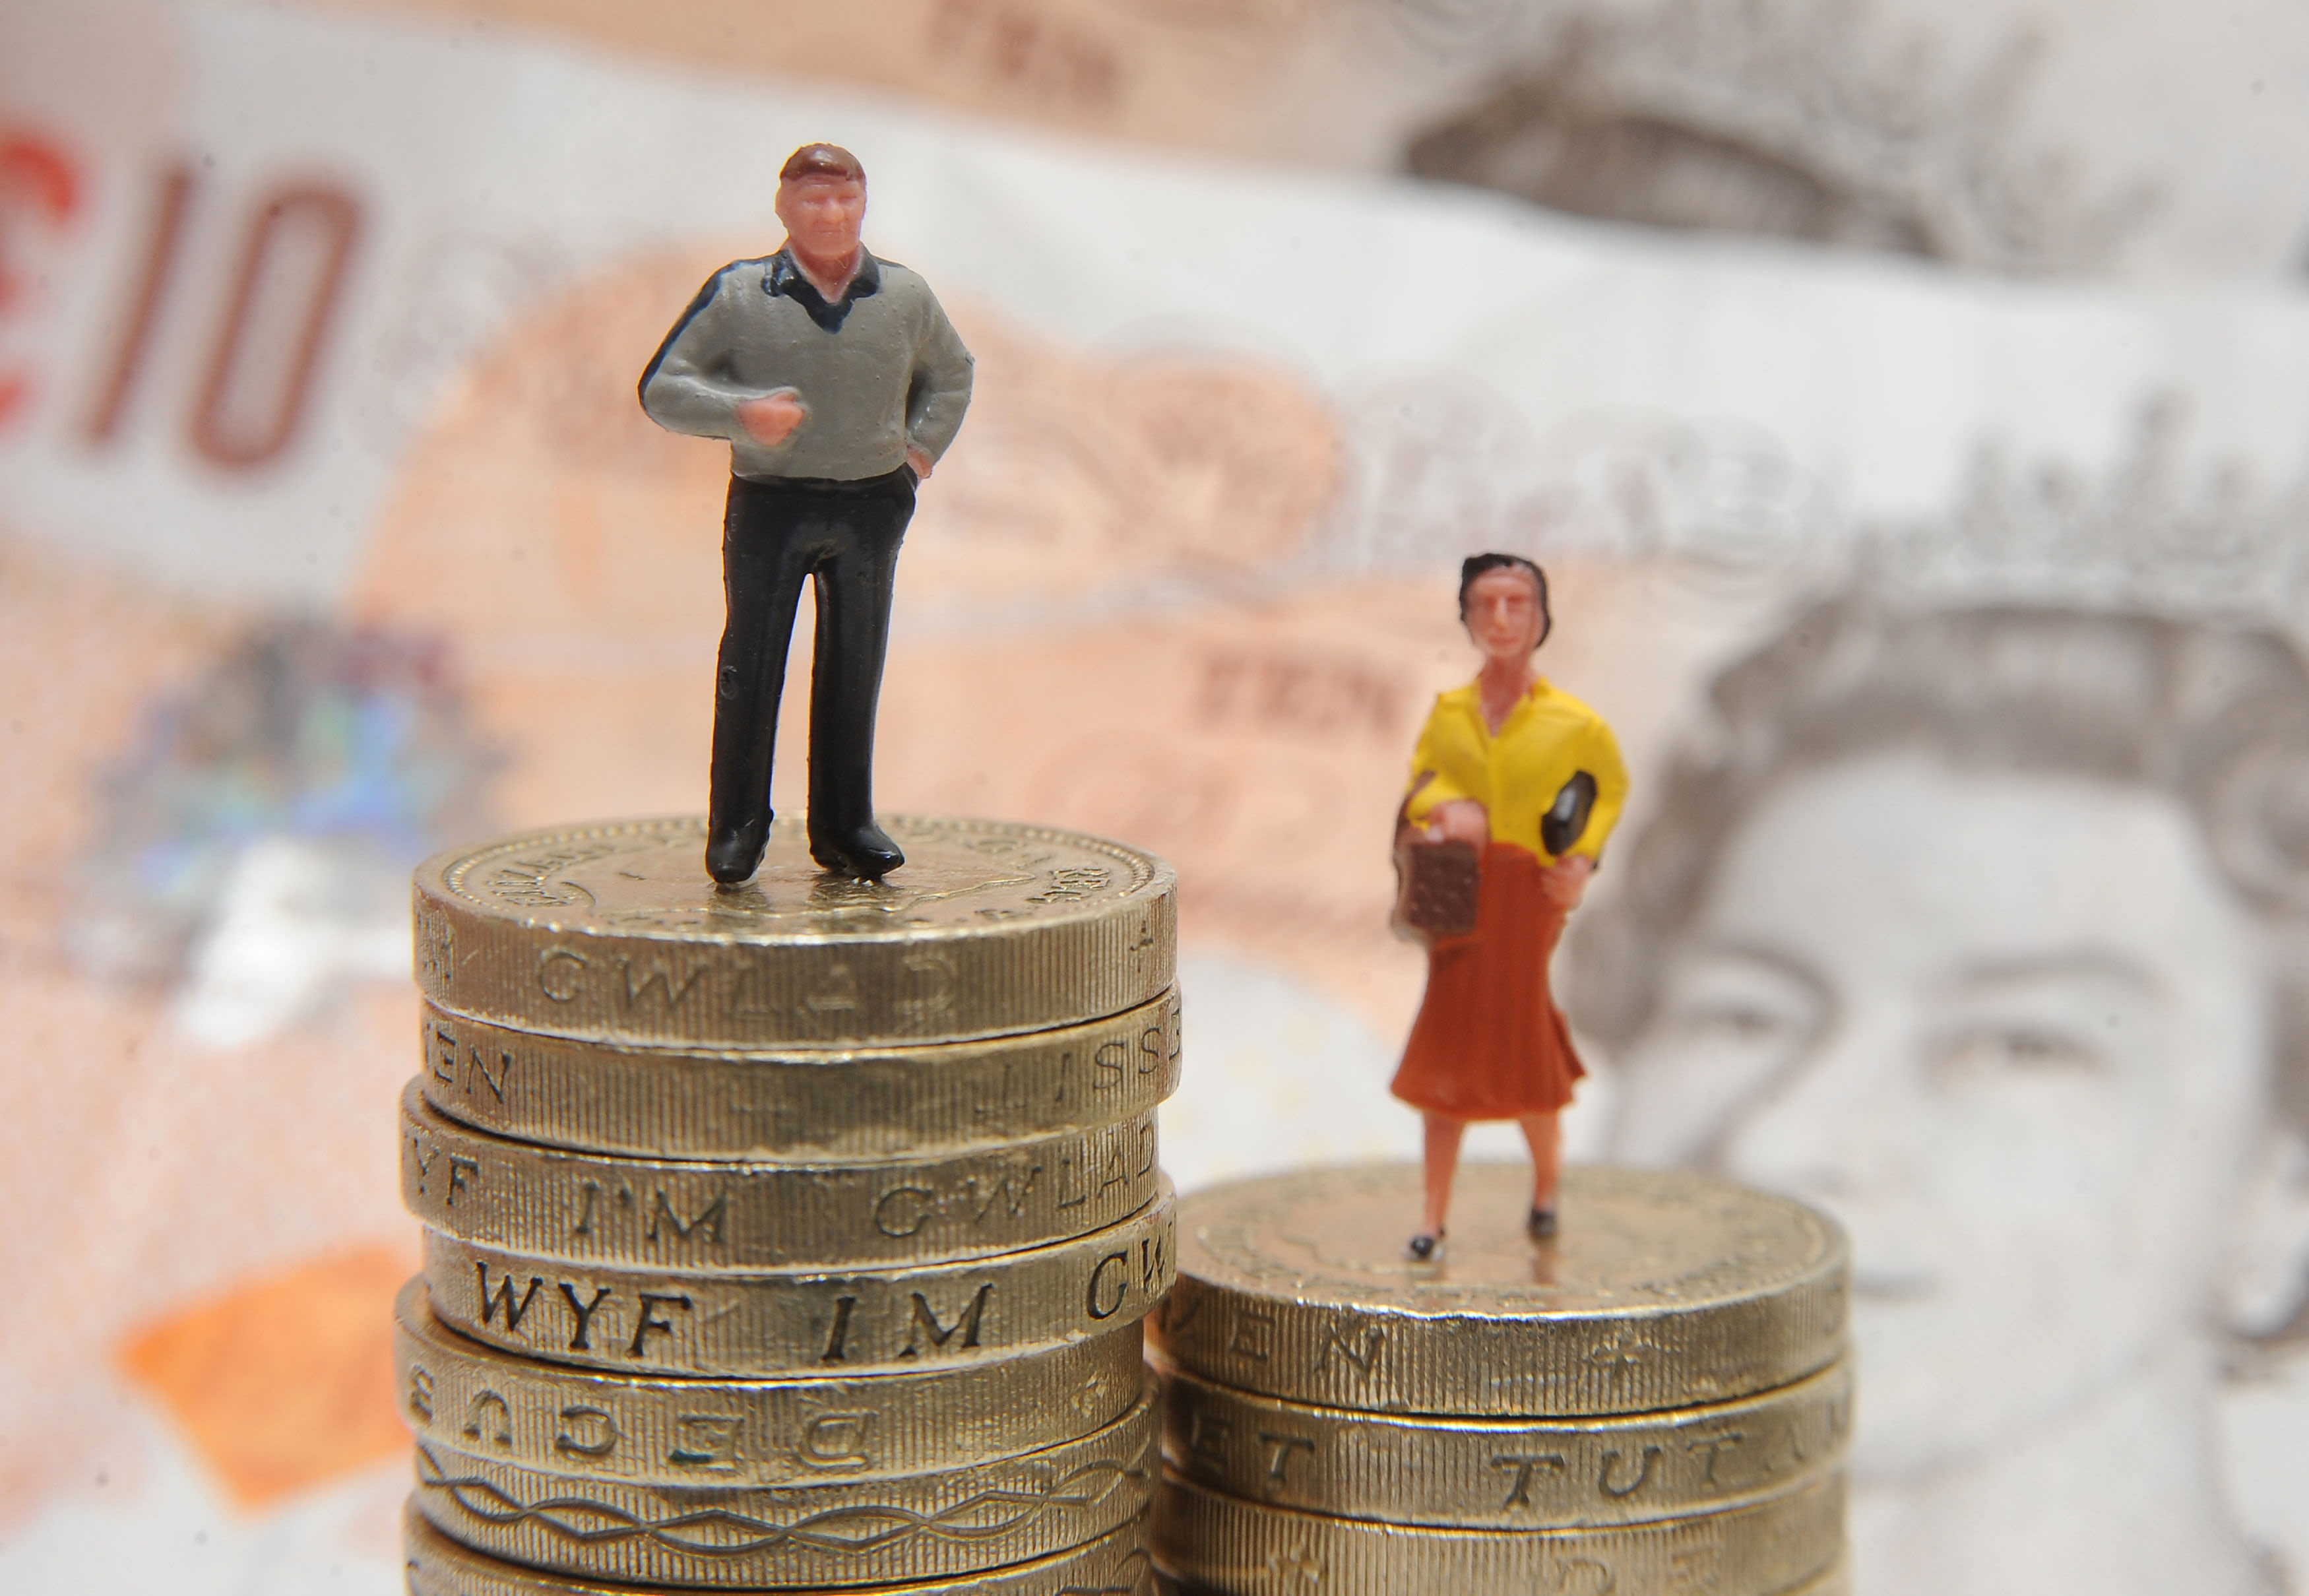 Half of women have no plan for pension in divorce